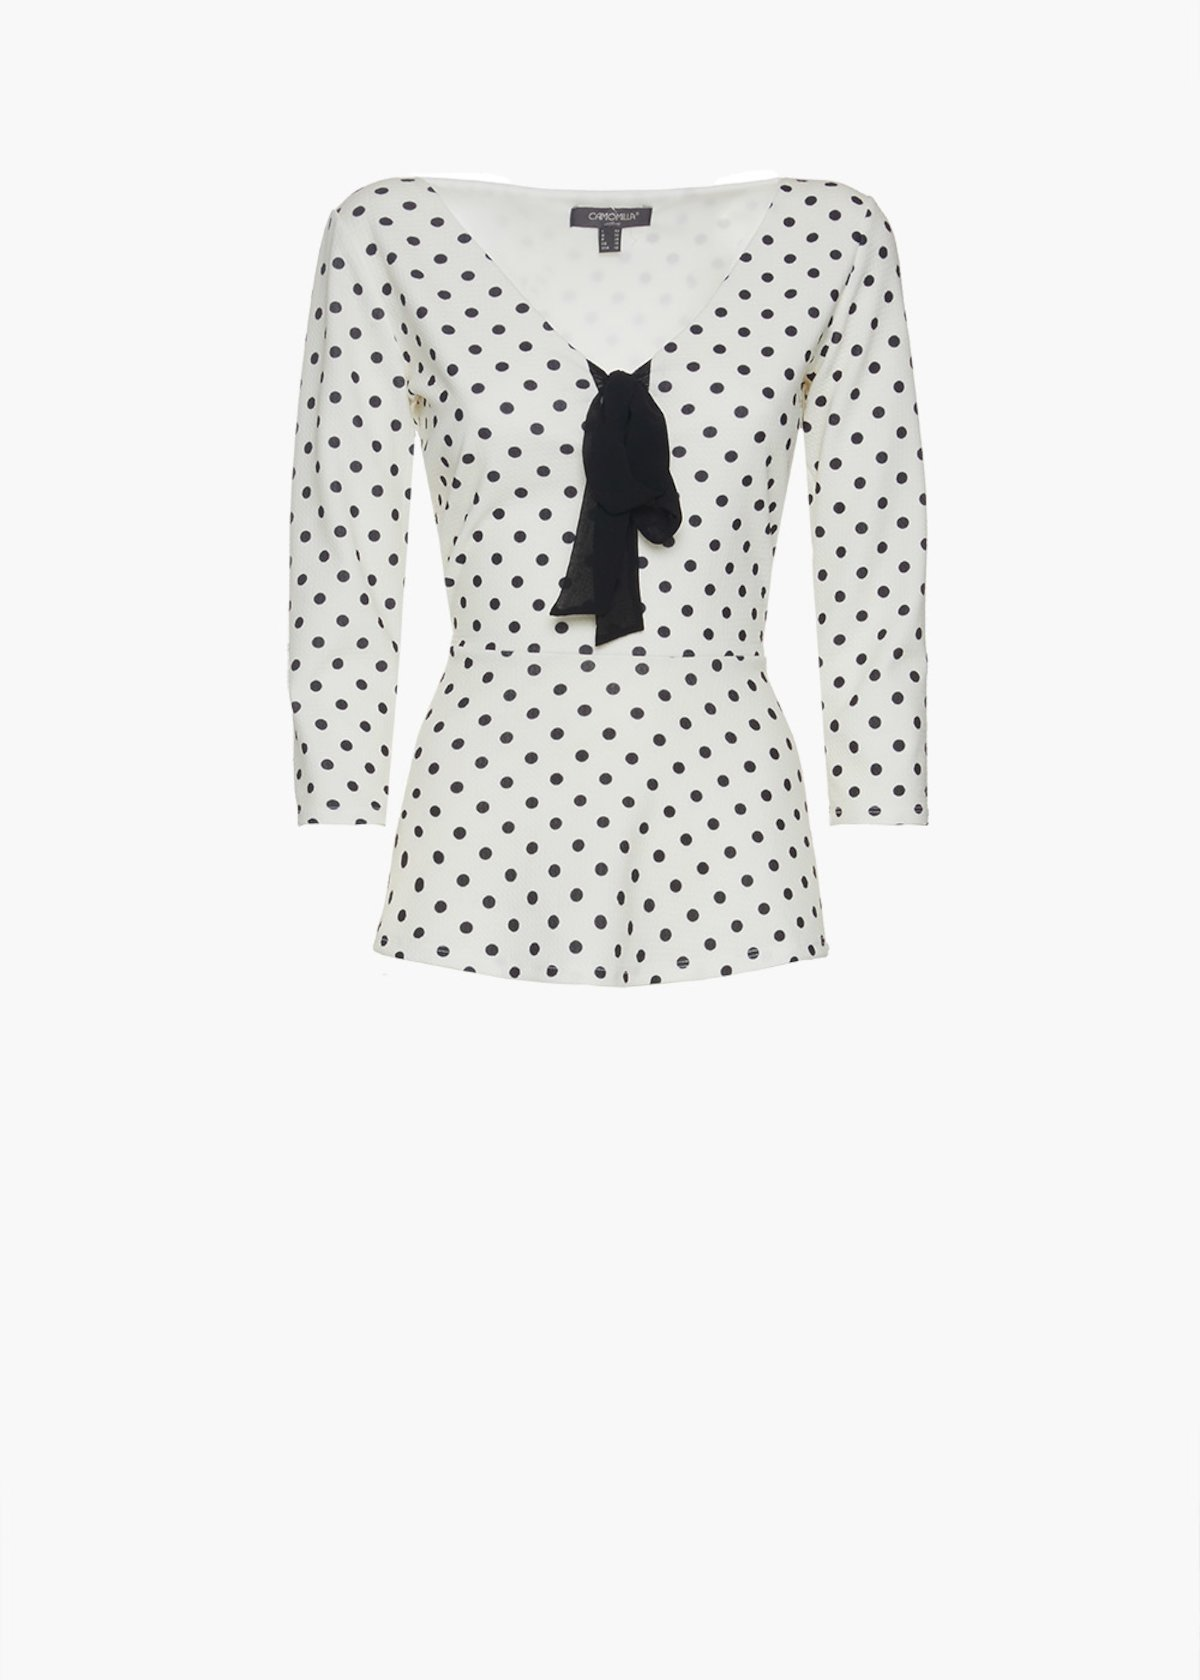 Sarik t-shirt with polka dot print and bow on the neck - White / Black Pois - Woman